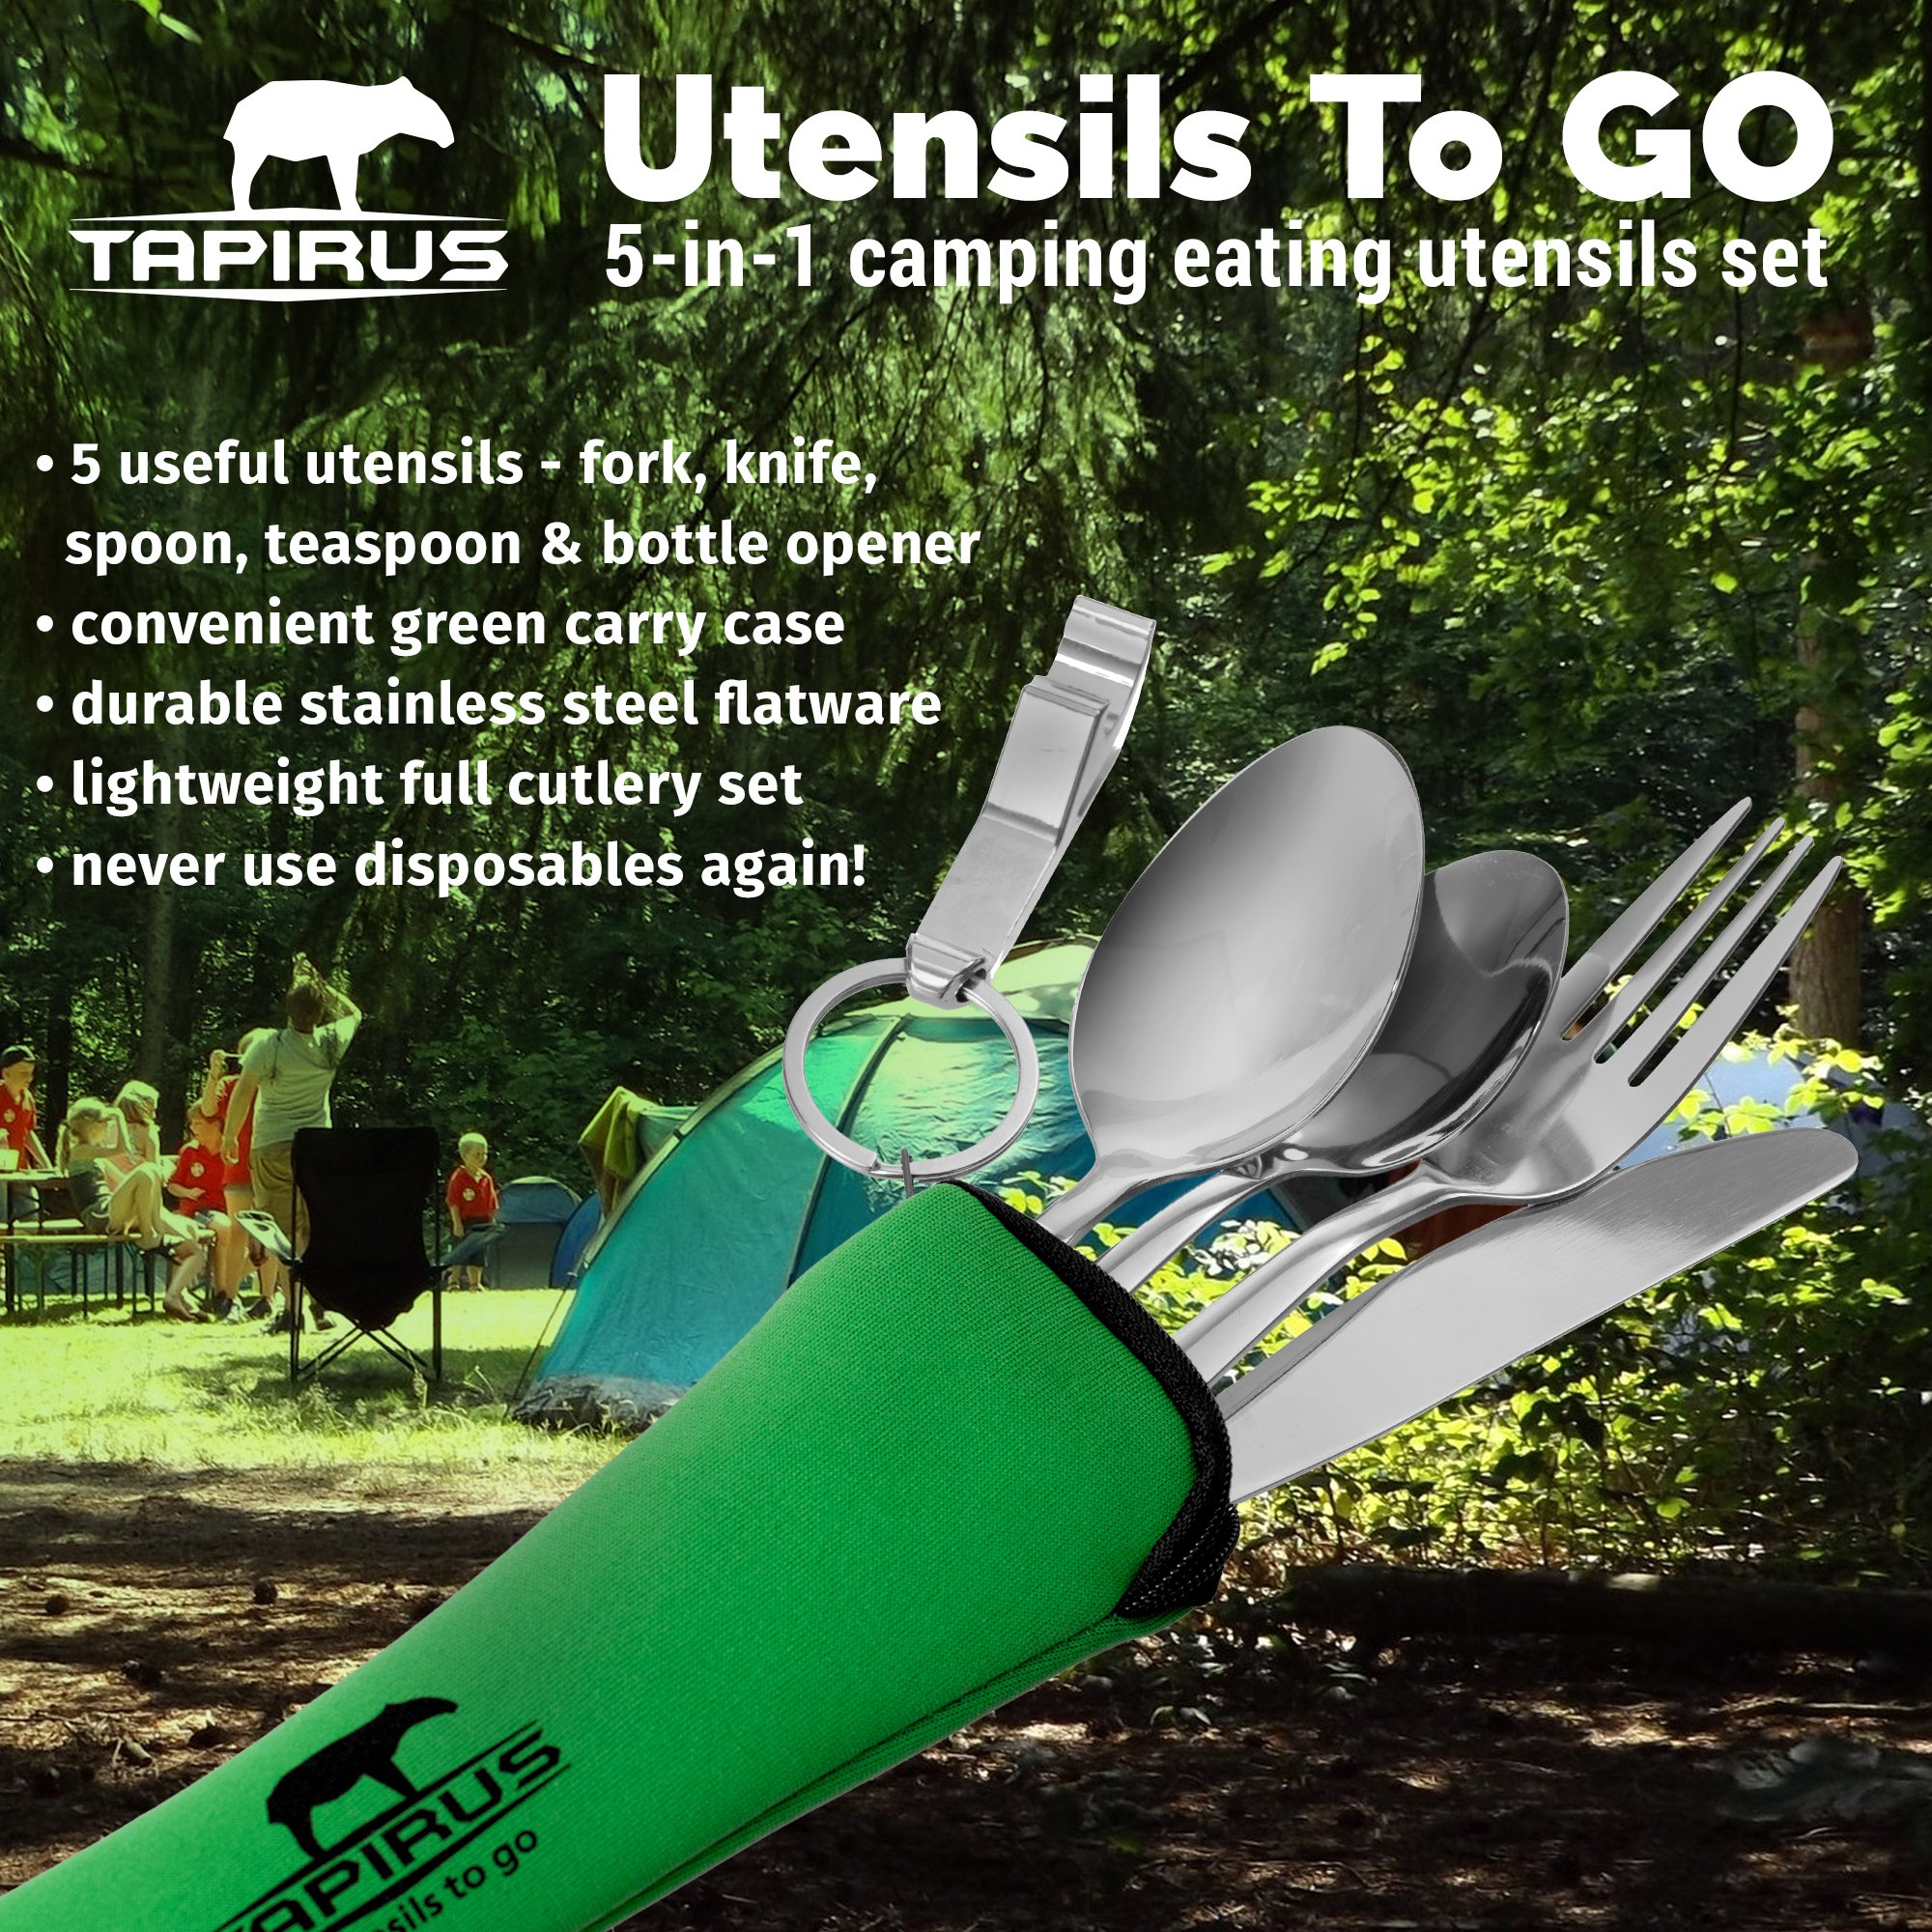 Tapirus Camping Eating Utensils To Go   Durable Stainless Steel Lightweight Construction Flatware   Travel Mess Cutlery Kit With Spoon, Teaspoon, Knife, Fork & Bottle Opener   Comes In A Carrying Case by Tapirus (Image #2)